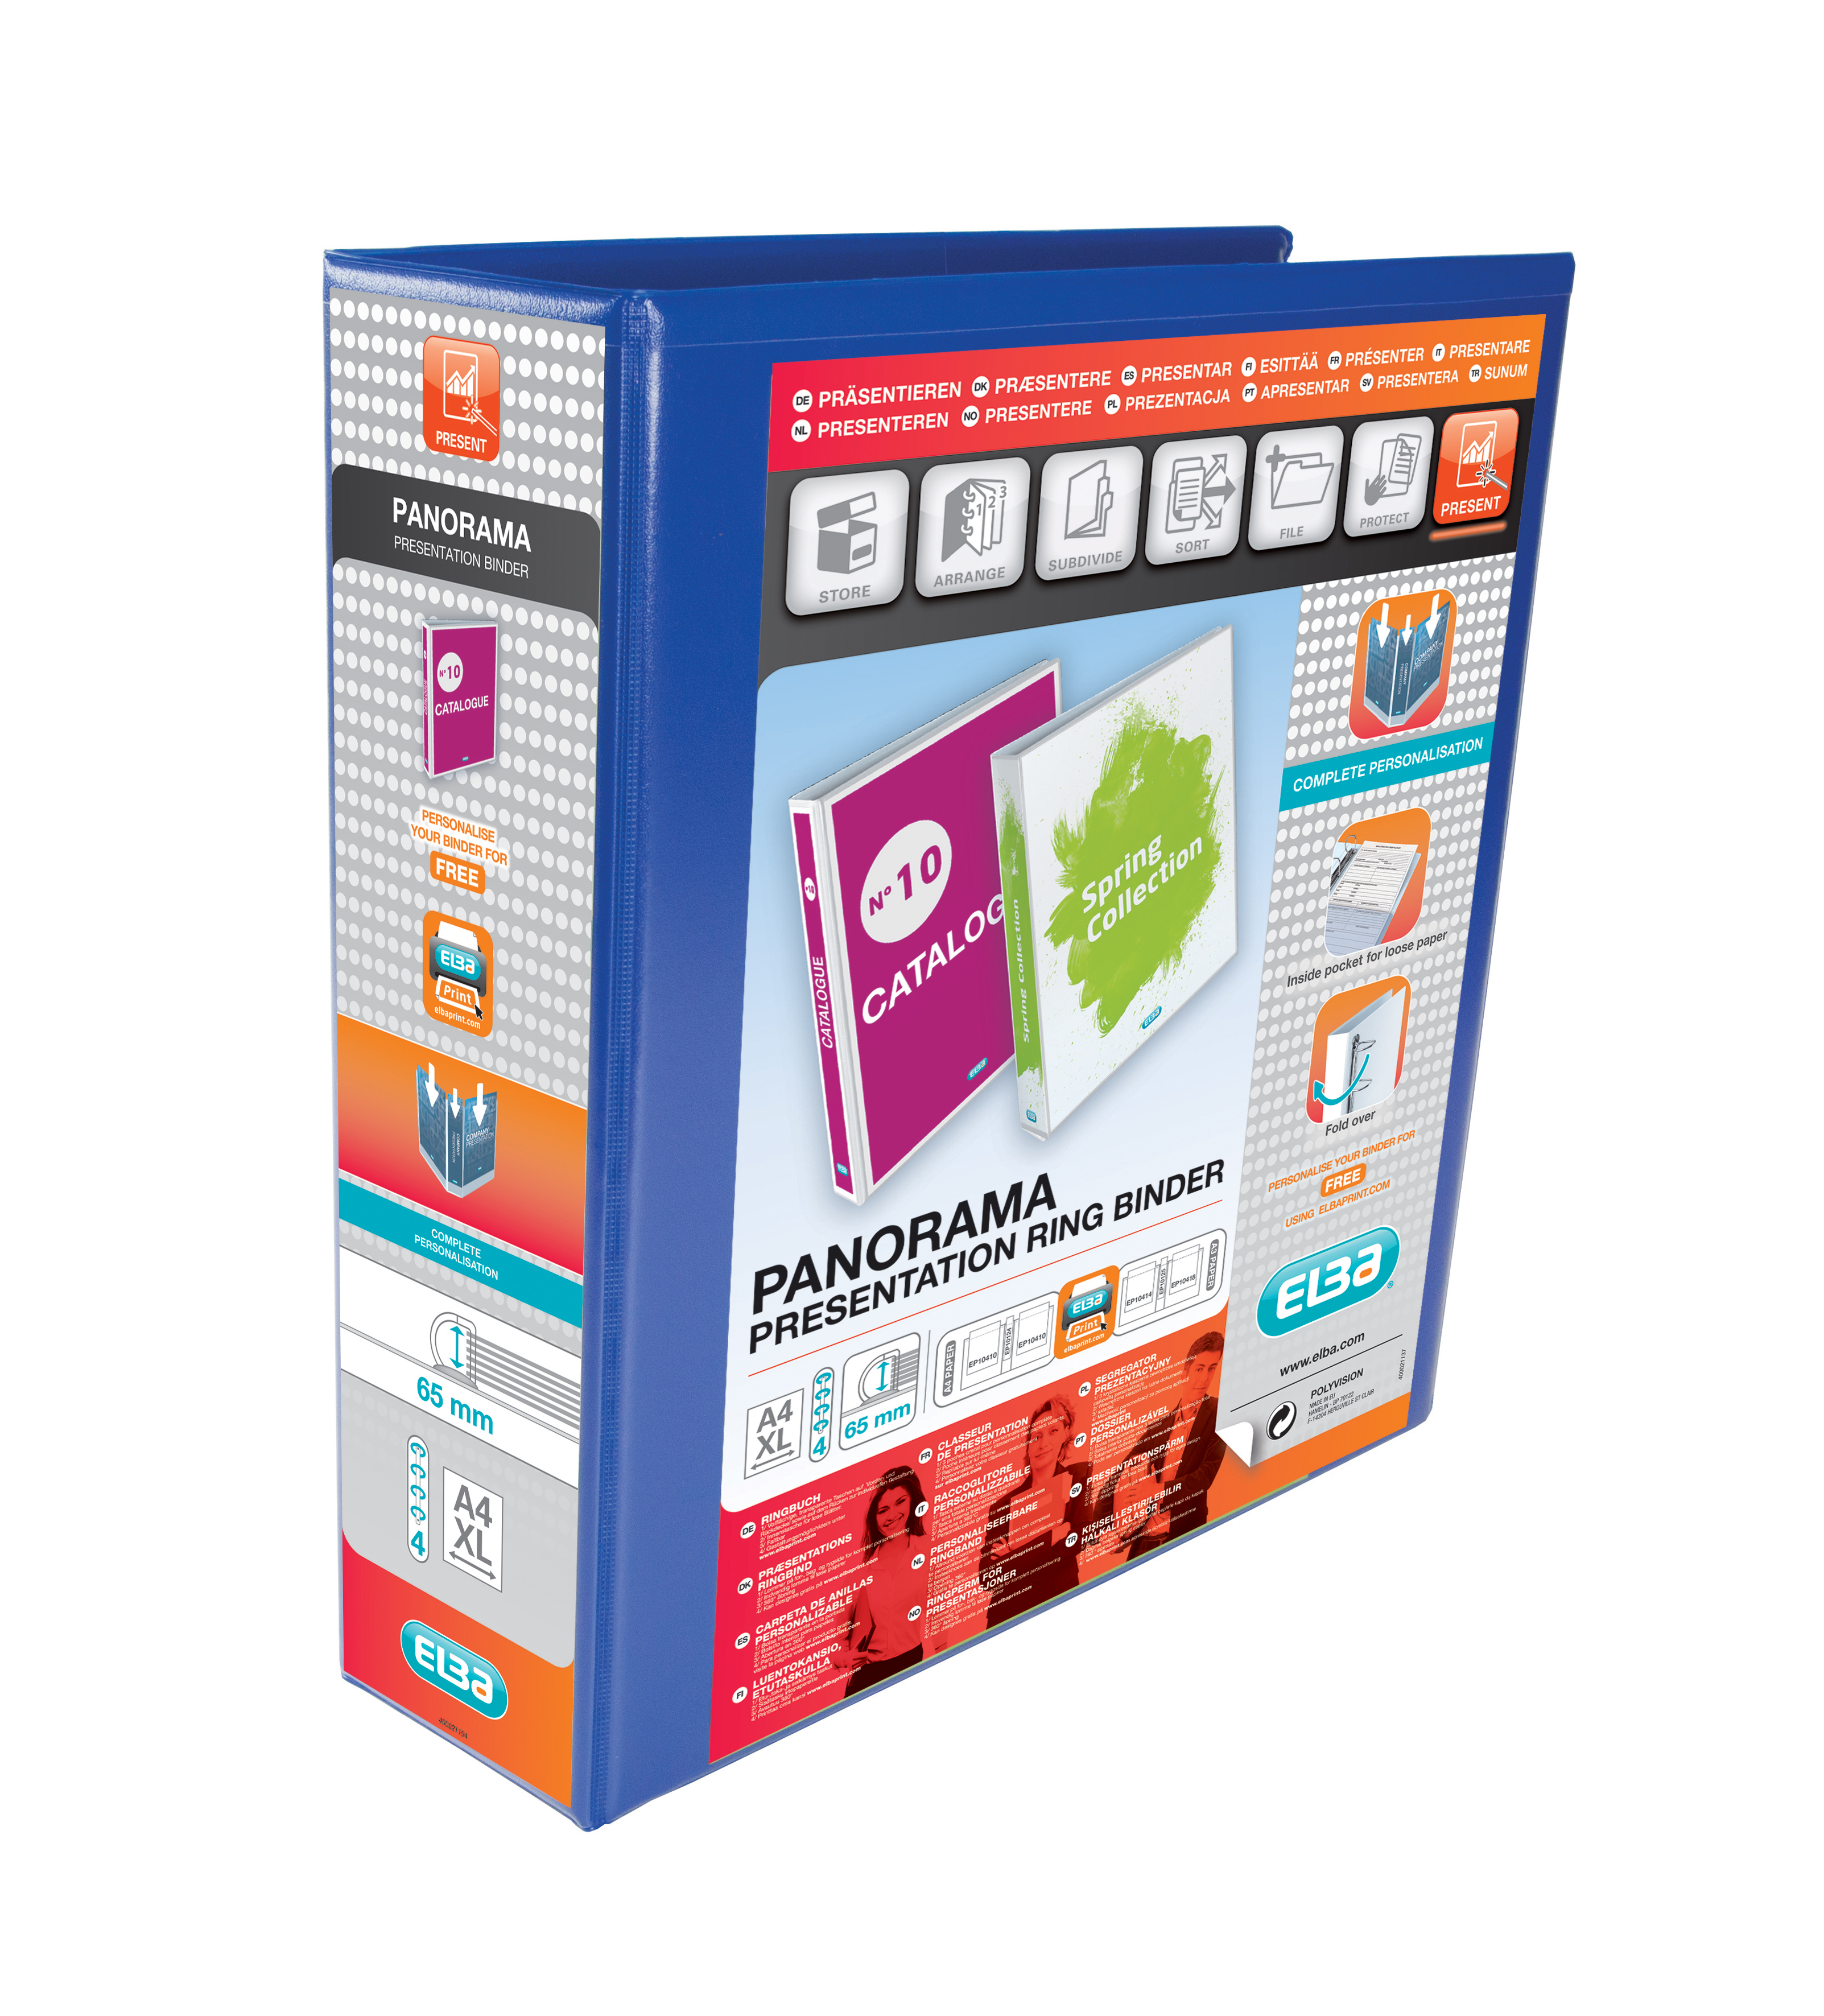 Elba Panorama Presentation Ring Binder PVC 4 D-Ring 65mm Capacity A4 Blue Ref 400008675 [Pack 4]